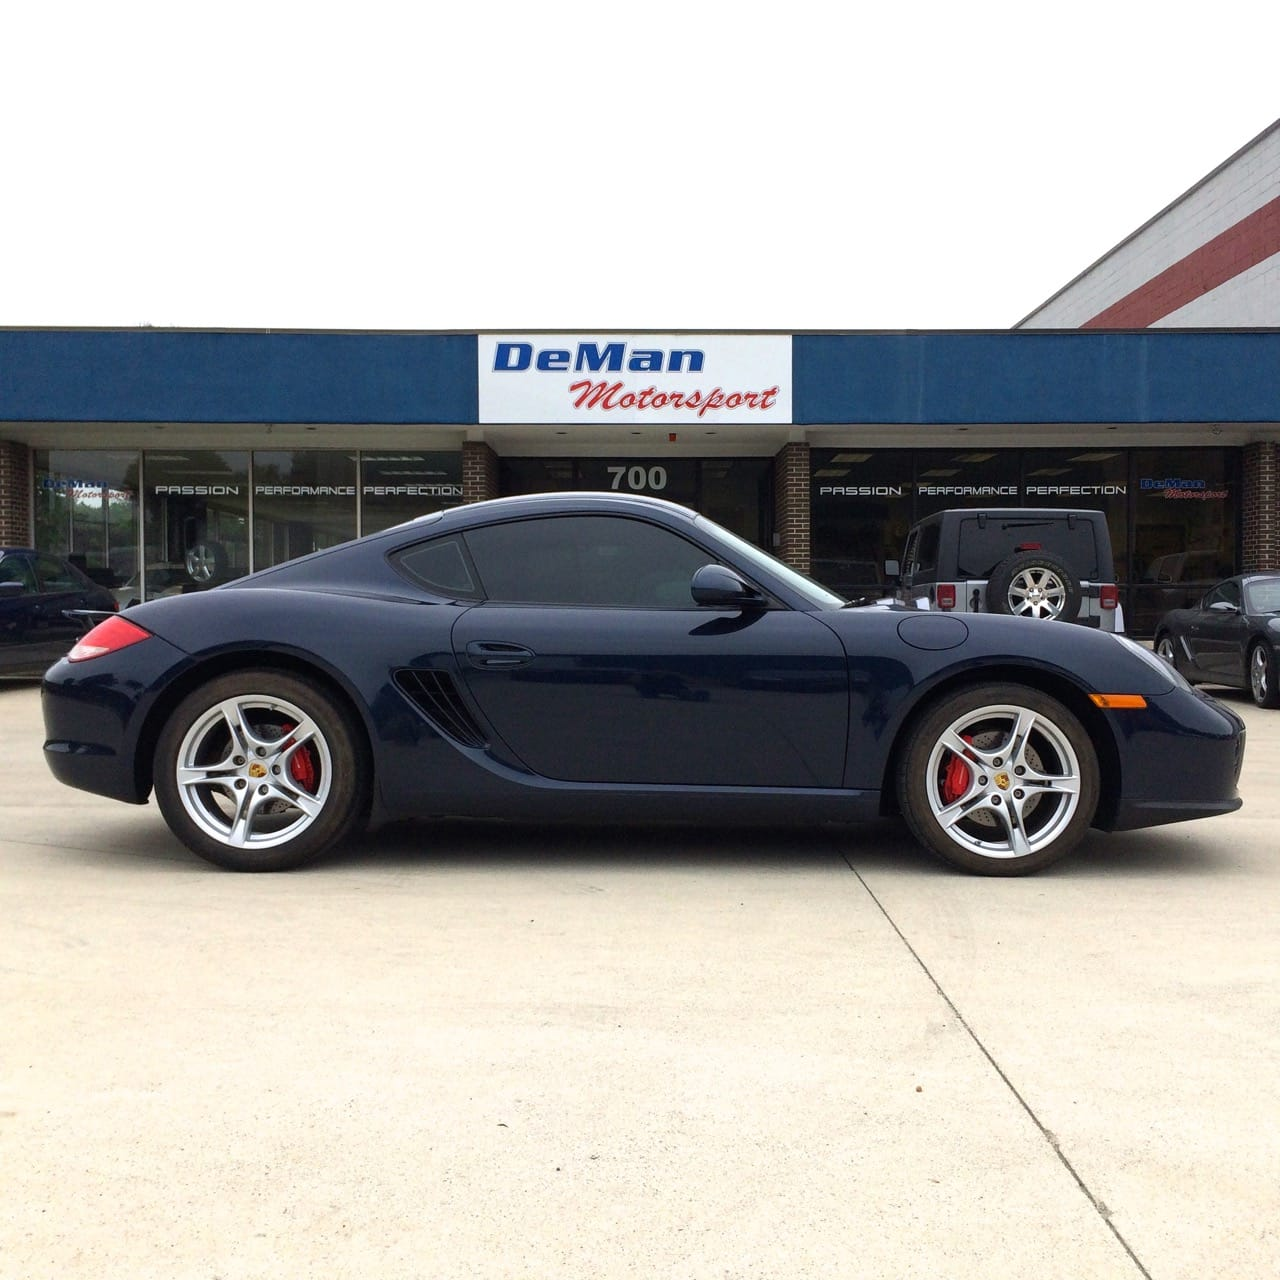 Porsche Cayman S 2011 photo - 10